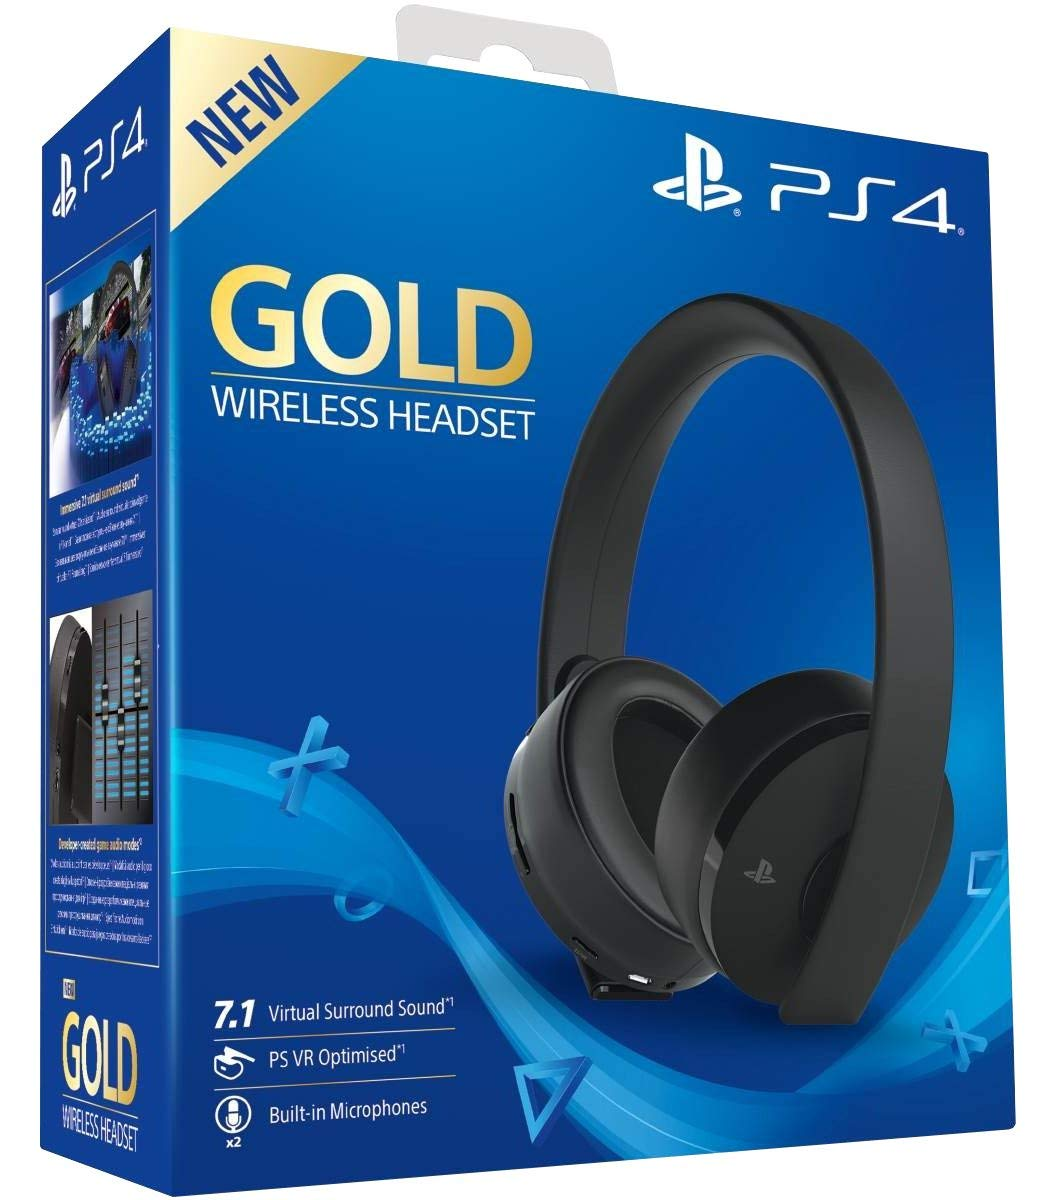 Sony Playstation 4 GOLD Wireless Headset Virtual 7.1